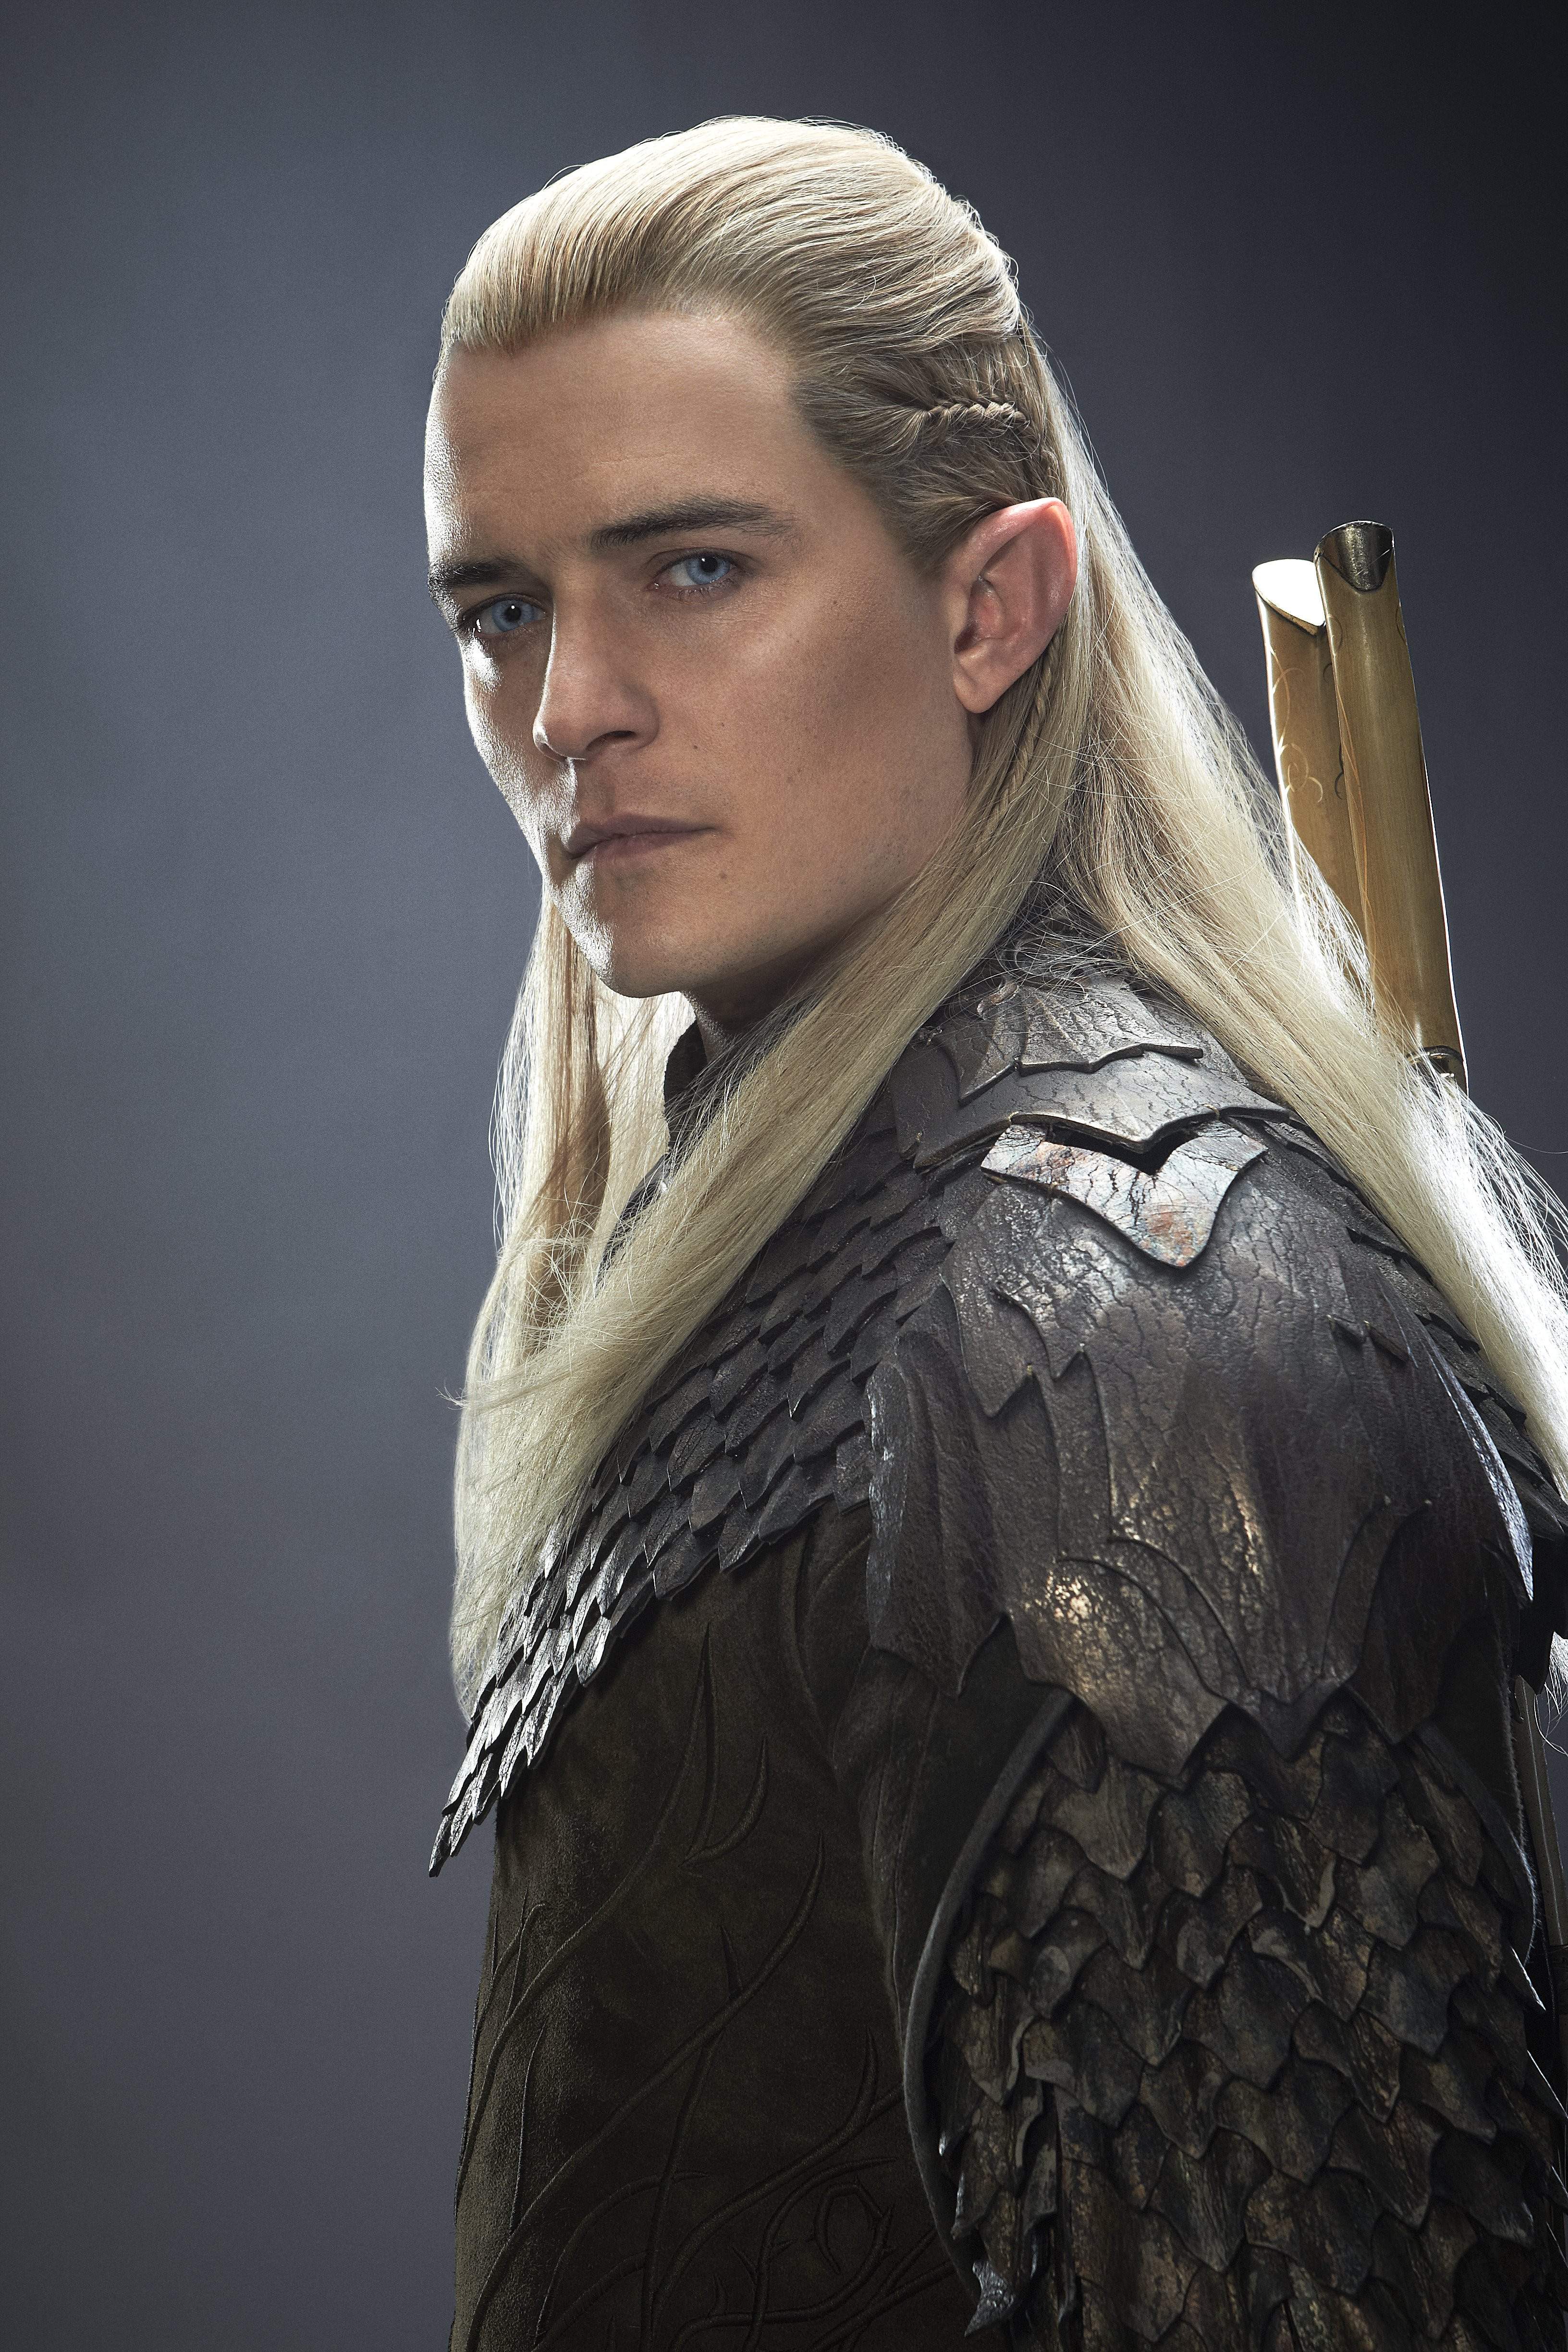 Orlando Bloom Lord Of The Rings Smiling